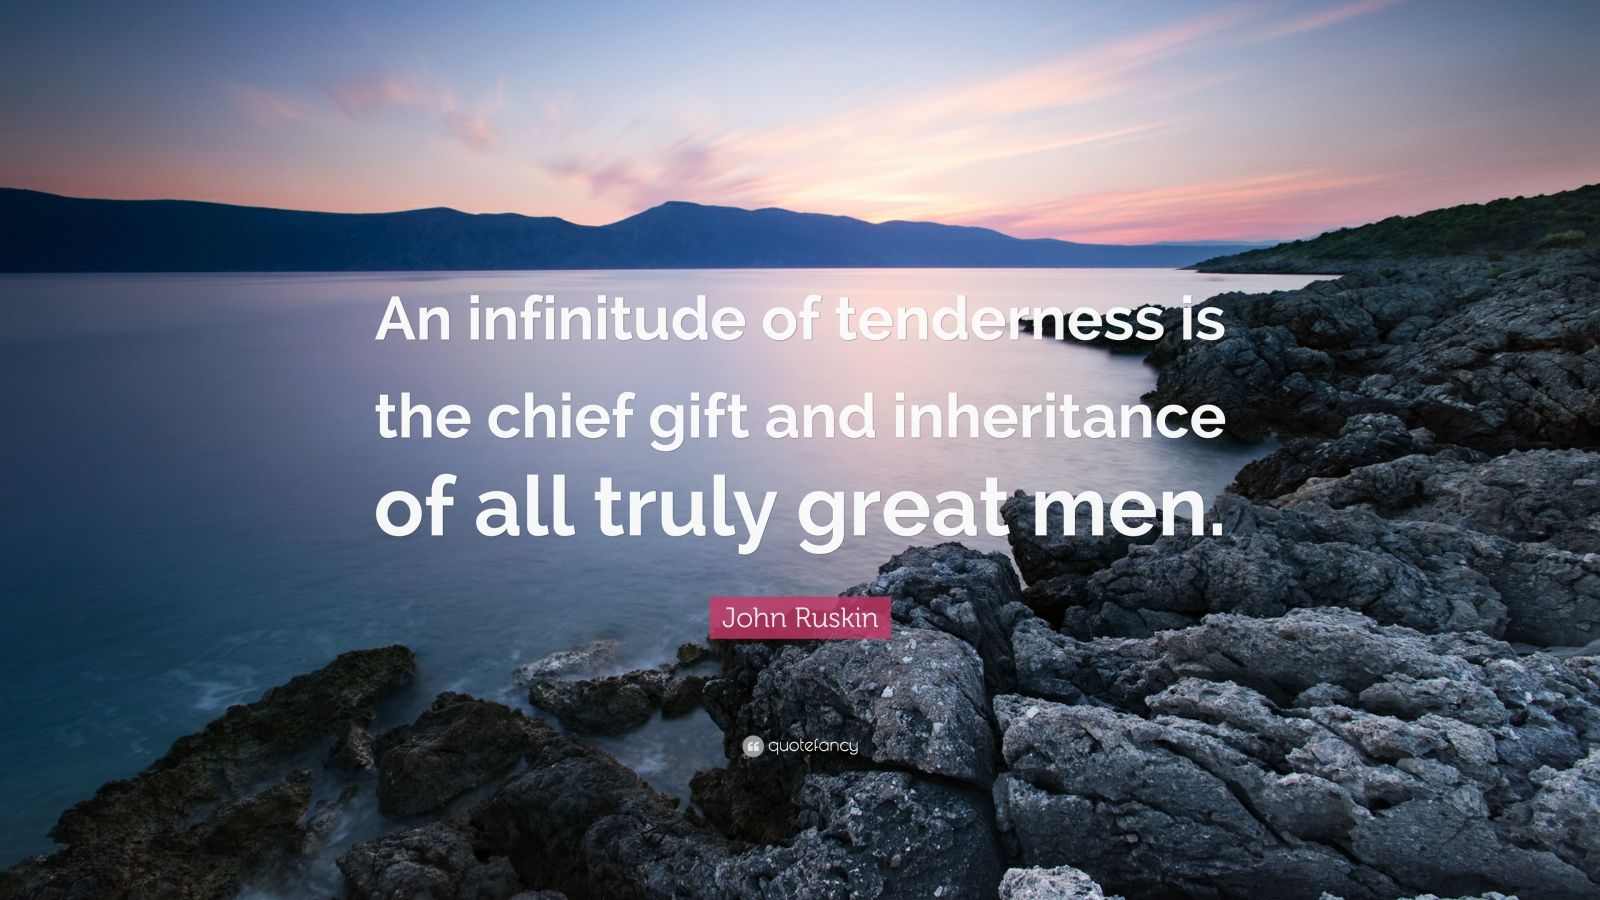 """John Ruskin Quote: """"An infinitude of tenderness is the chief gift and inheritance of all truly great men."""""""